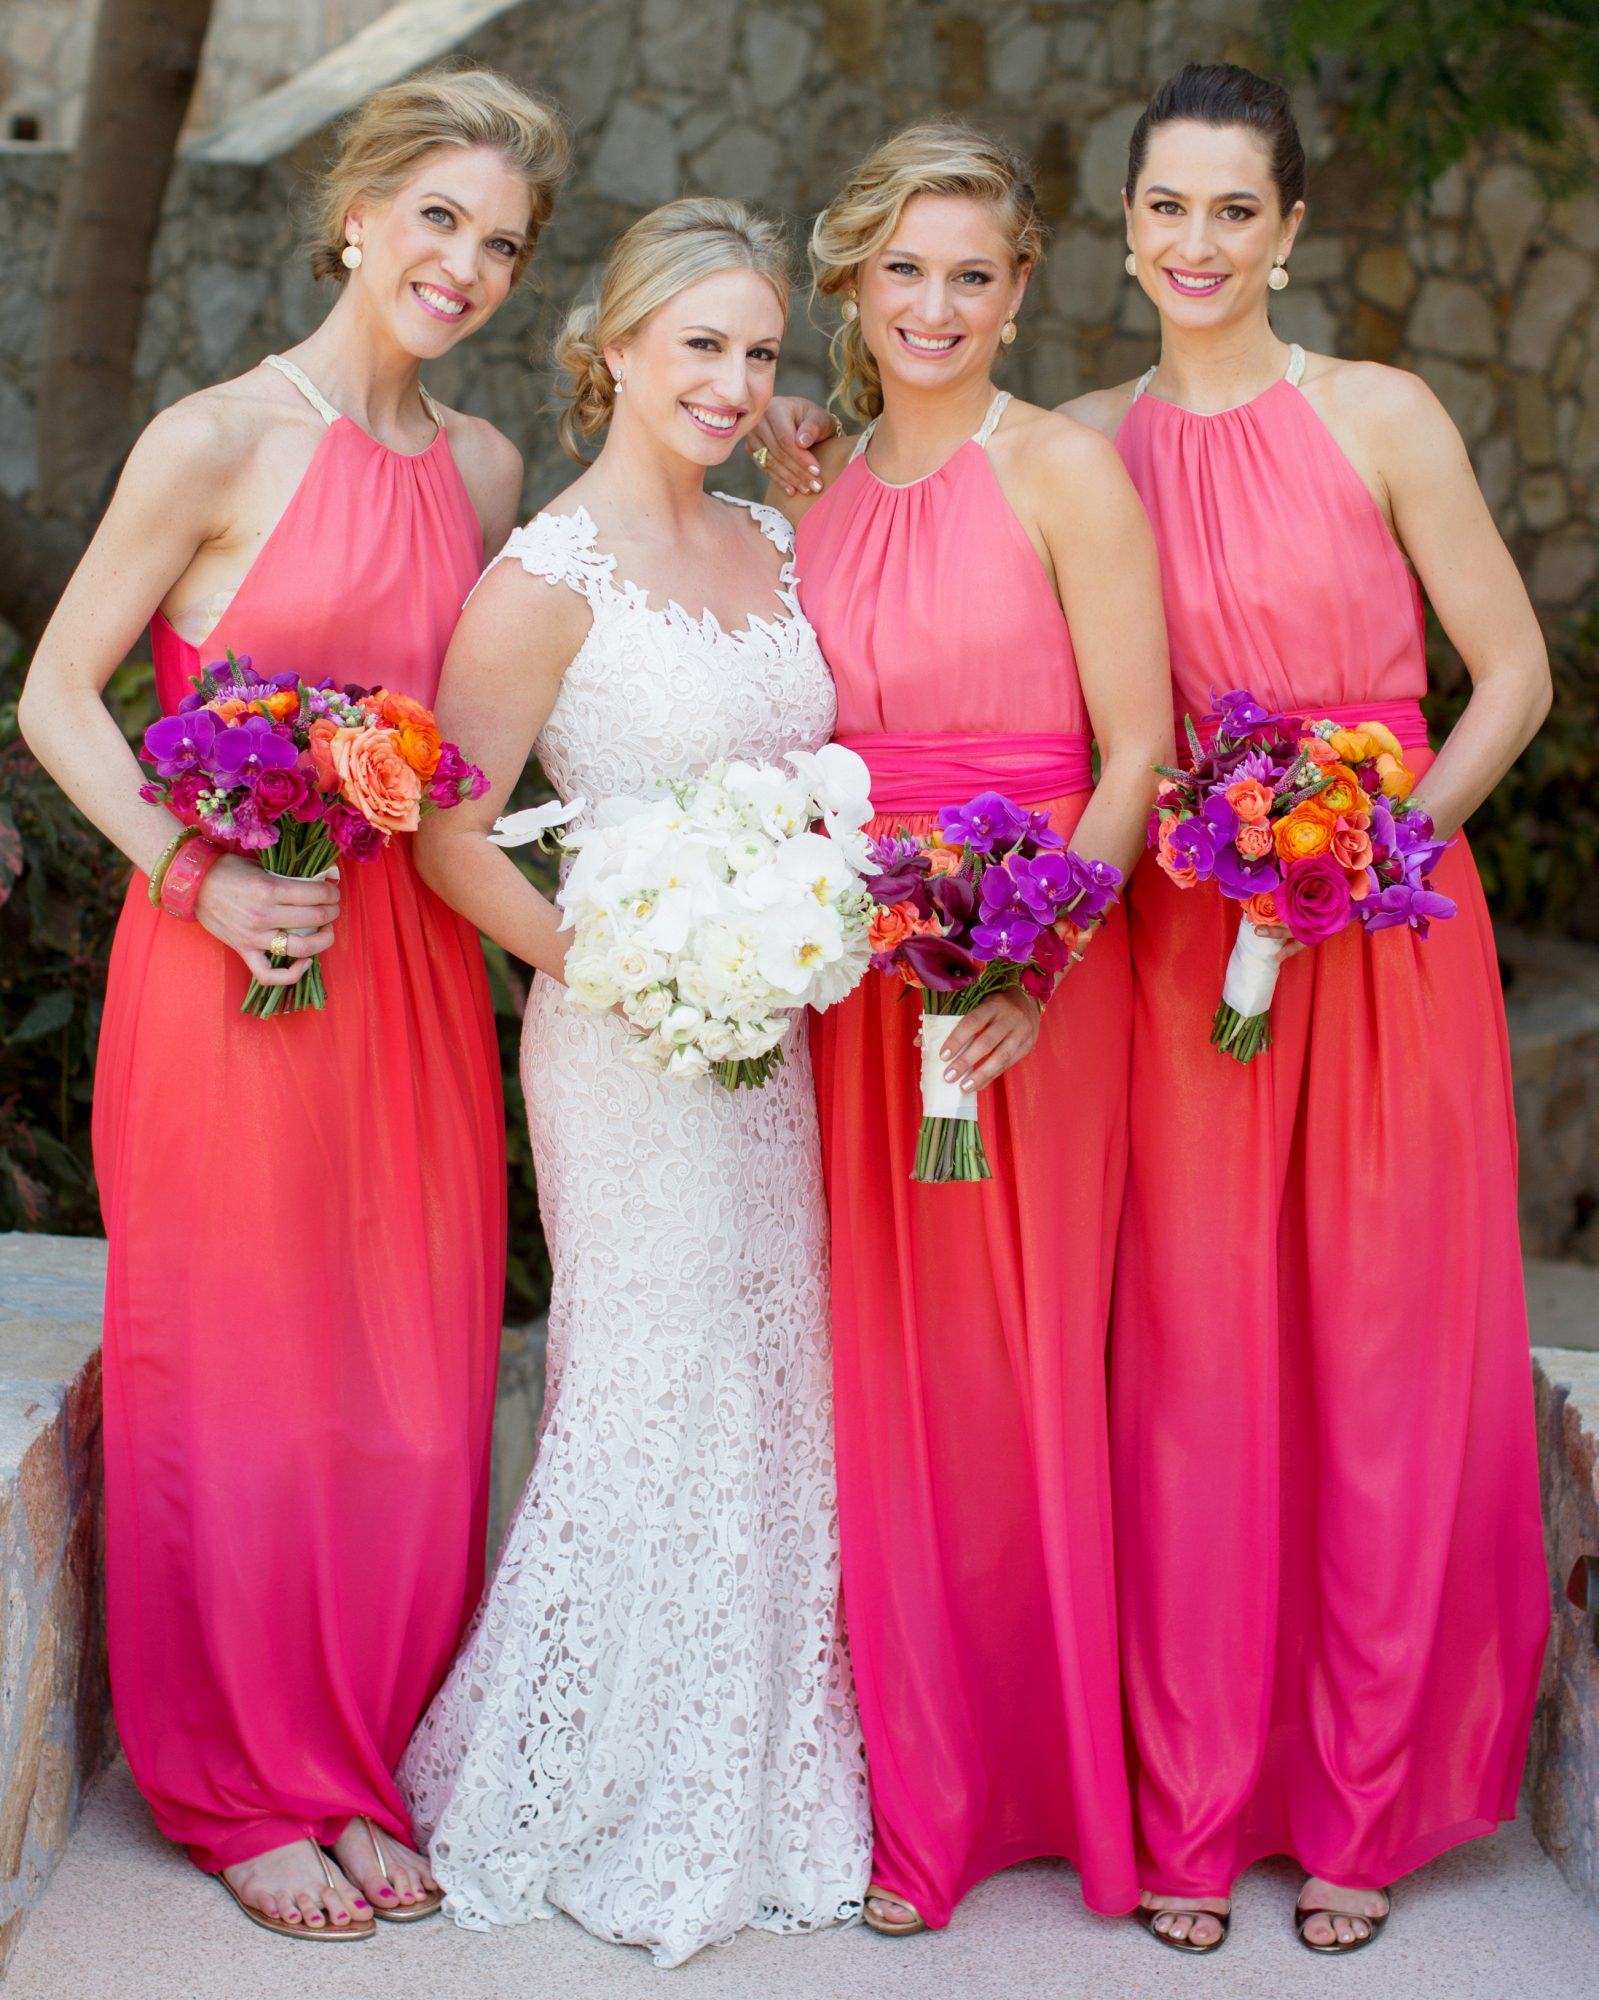 veronica-mathieu-wedding-bridesmaids-0929-s111501-1014.jpg